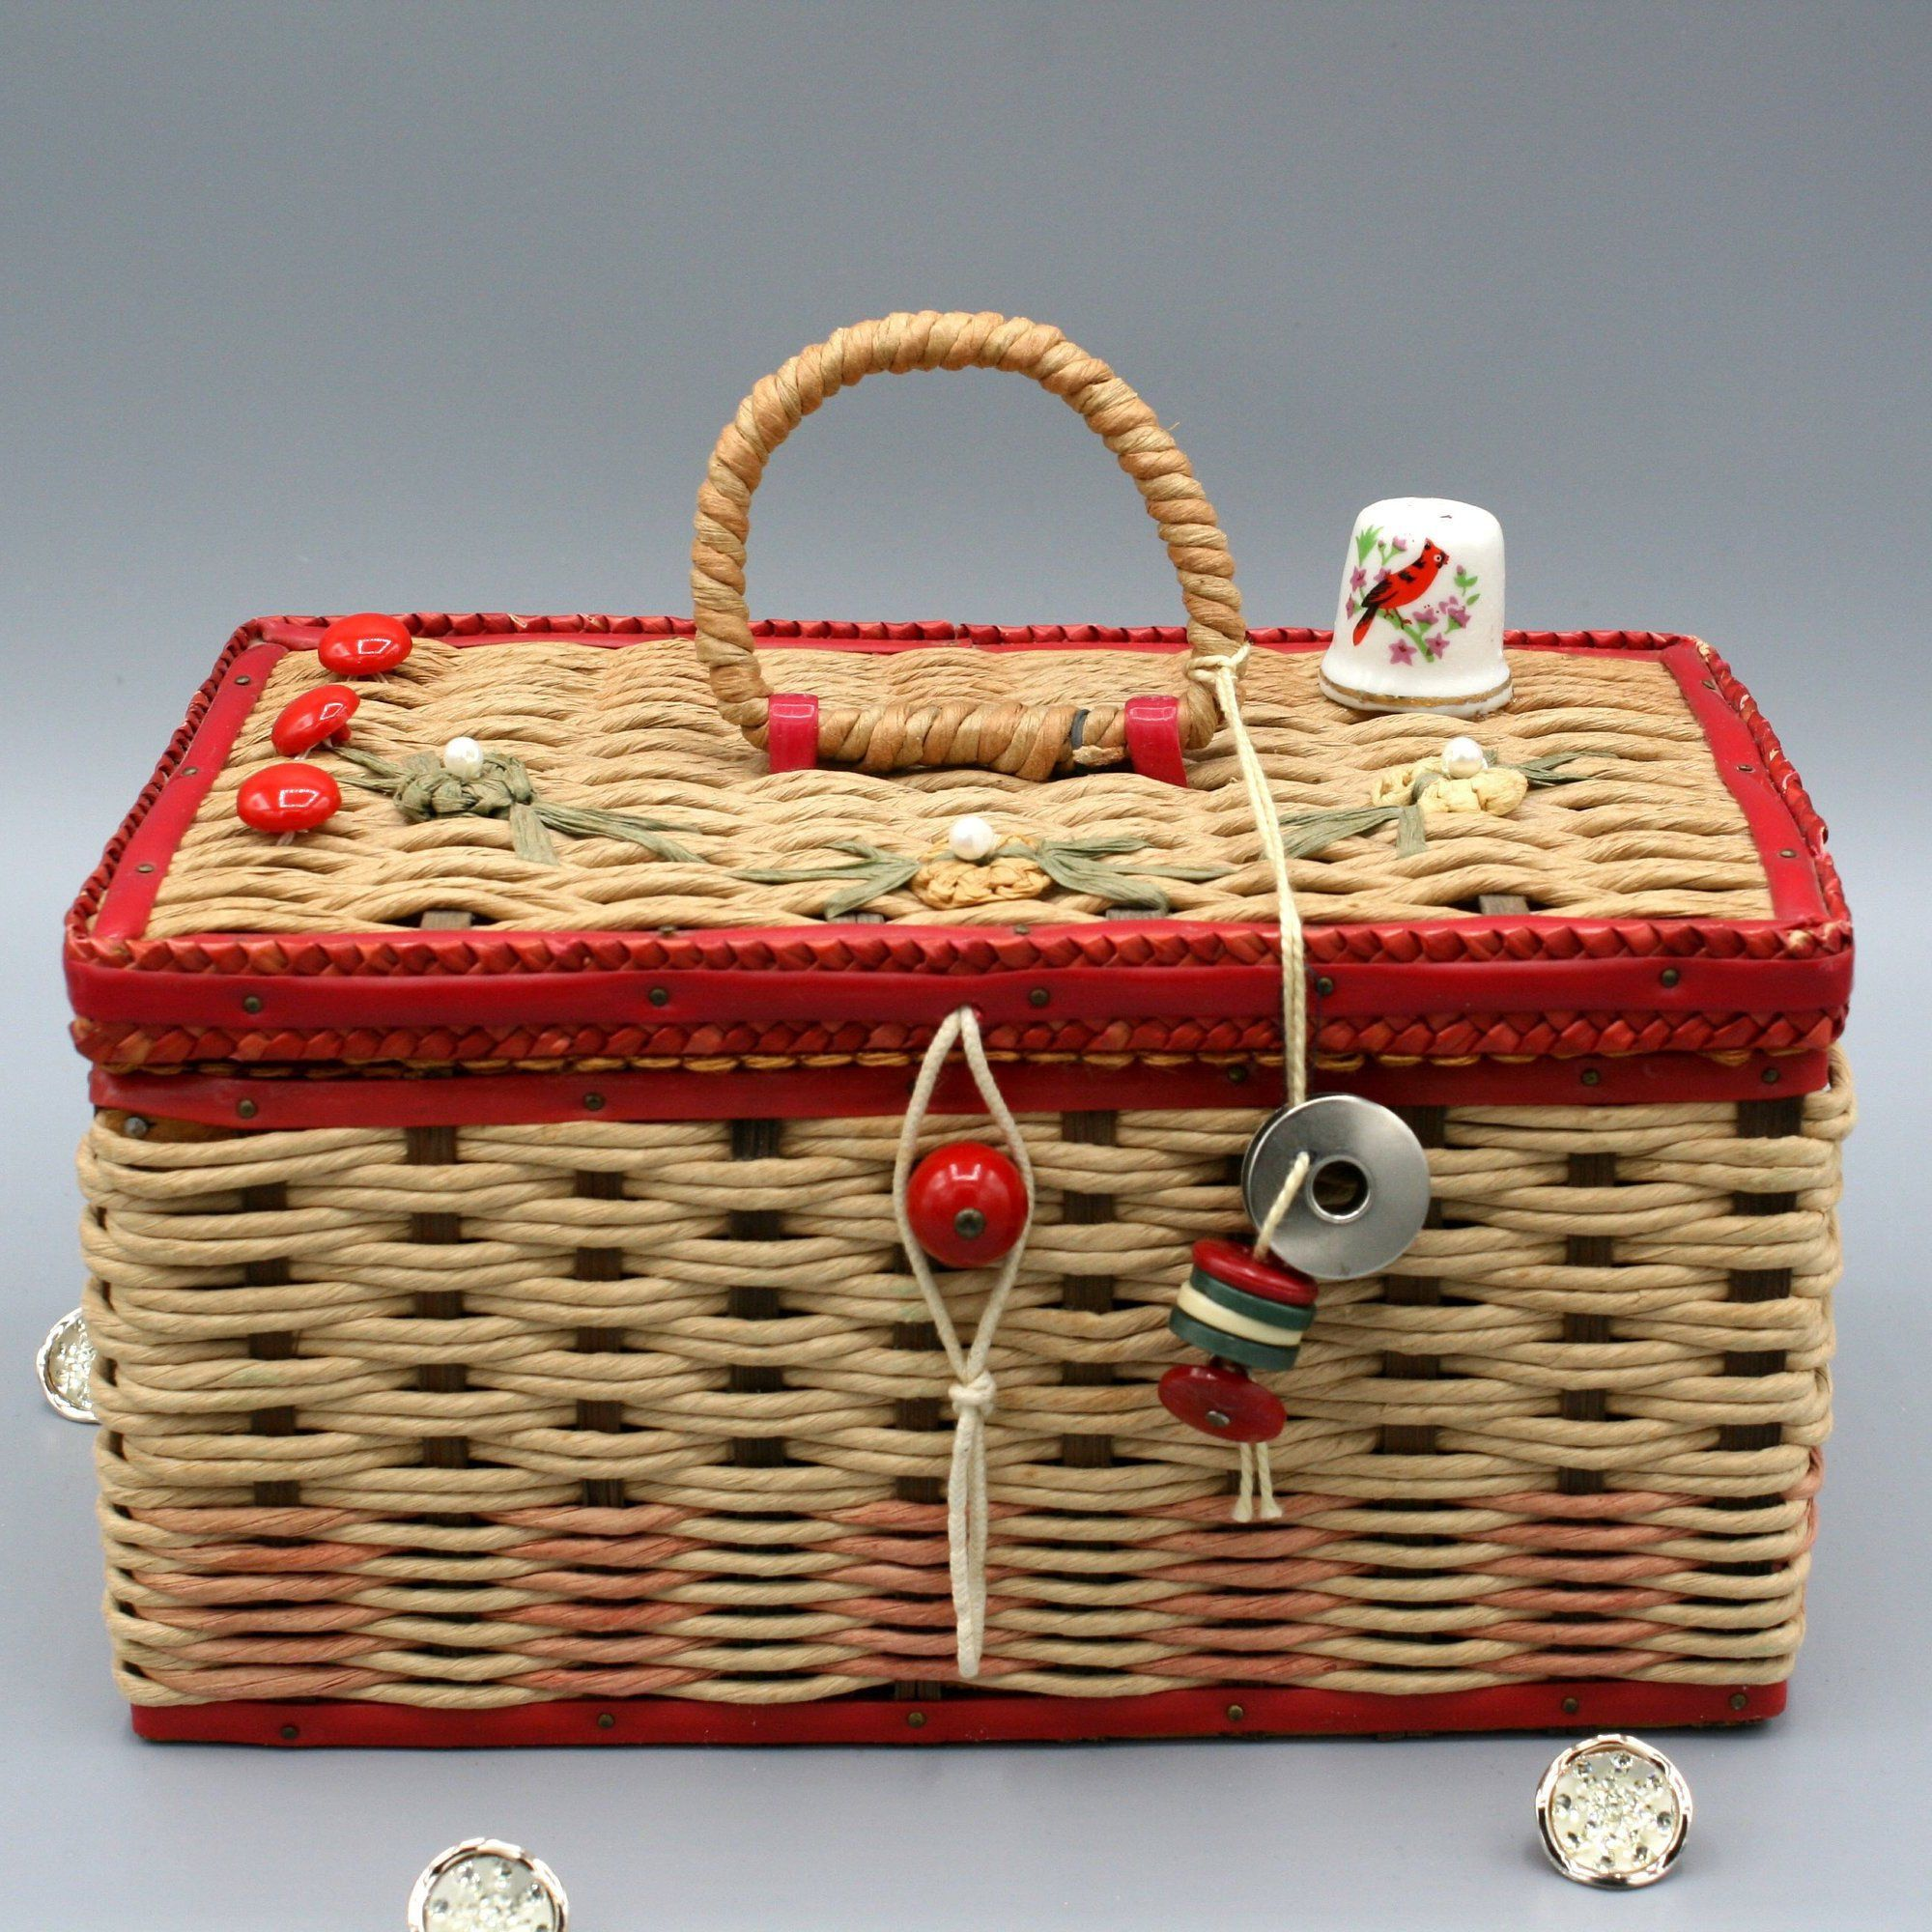 Cute vintage 1970s sewing kit basket jewelry box caddy red